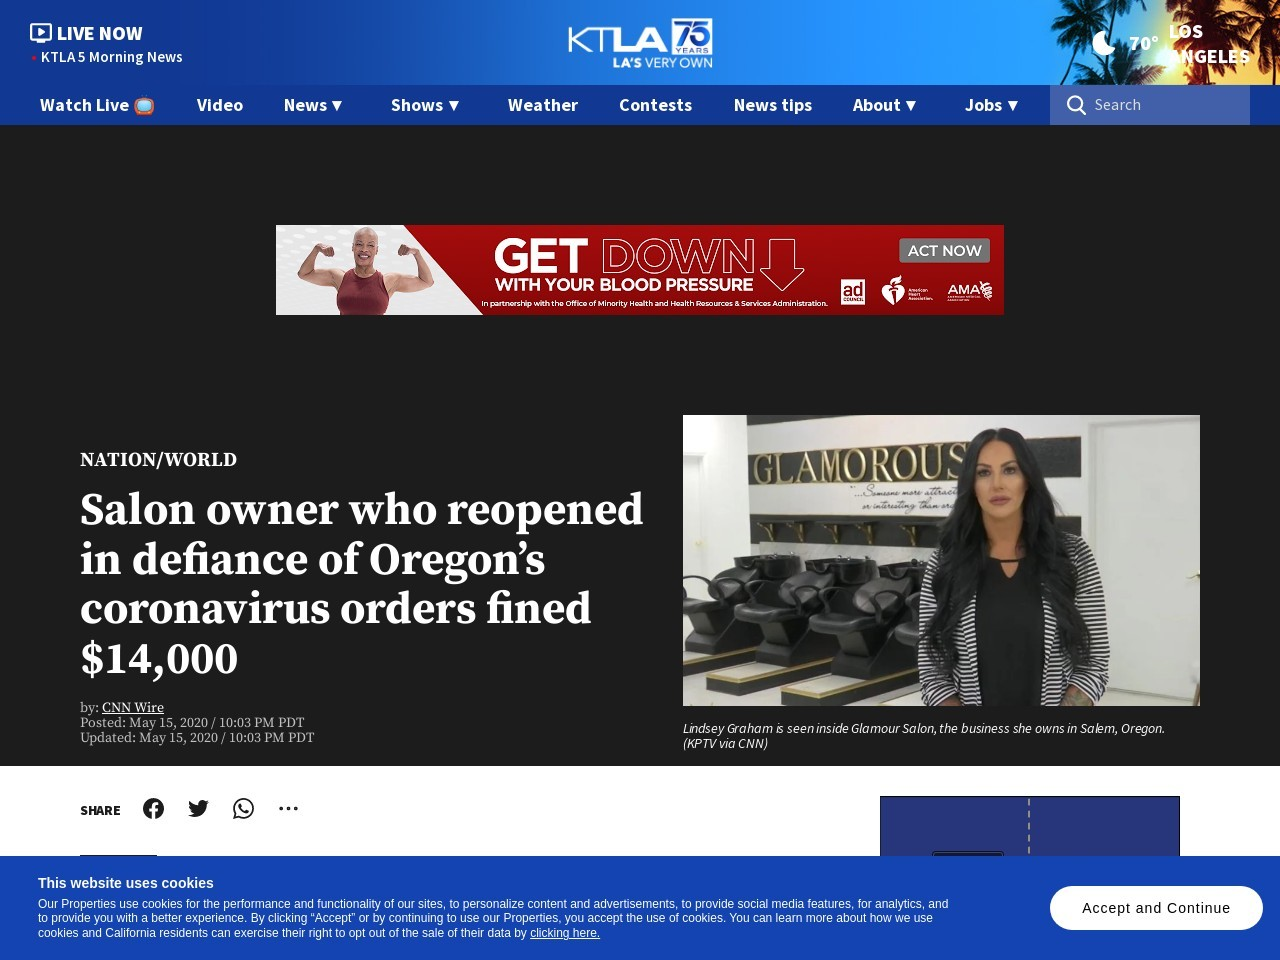 Salon owner who reopened in defiance of Oregon's coronavirus orders fined $14,000